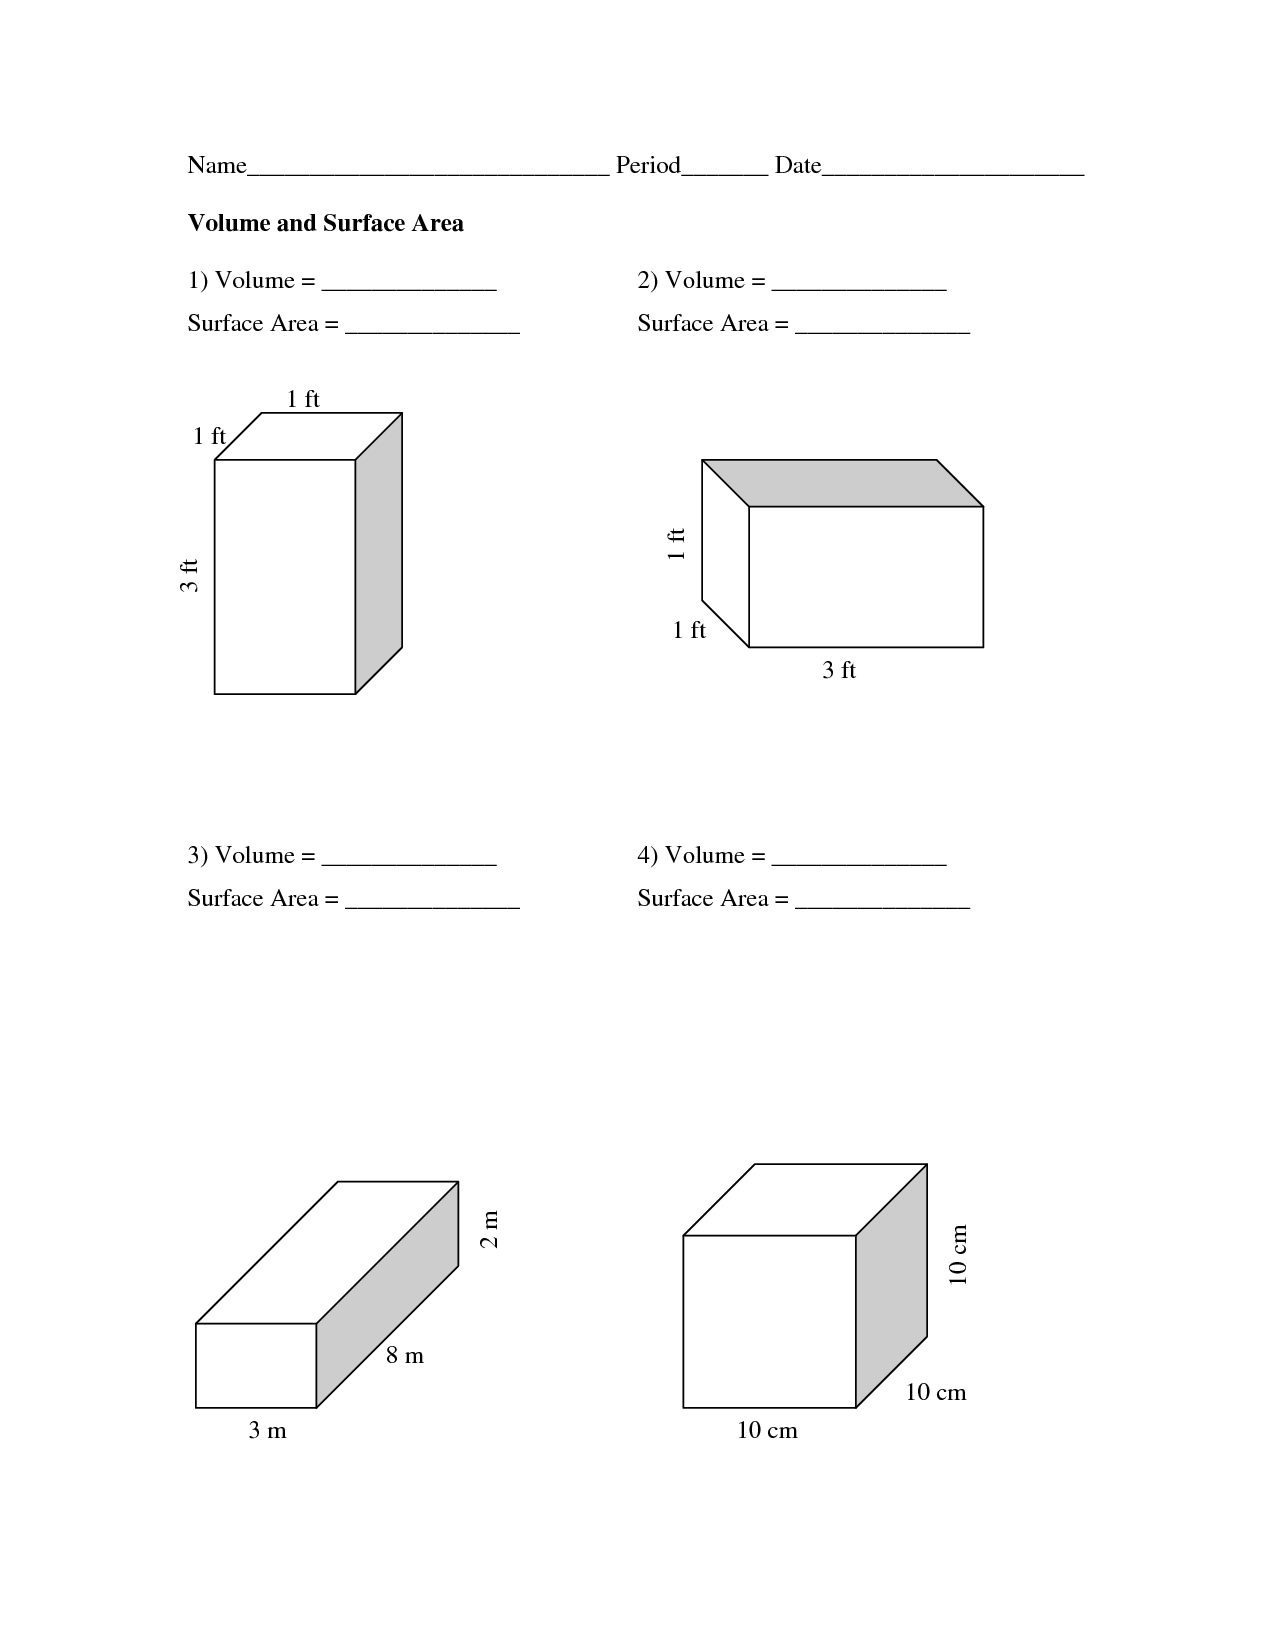 worksheet Volume Of 3d Shapes Worksheet Pdf volume and surface area worksheets pdf